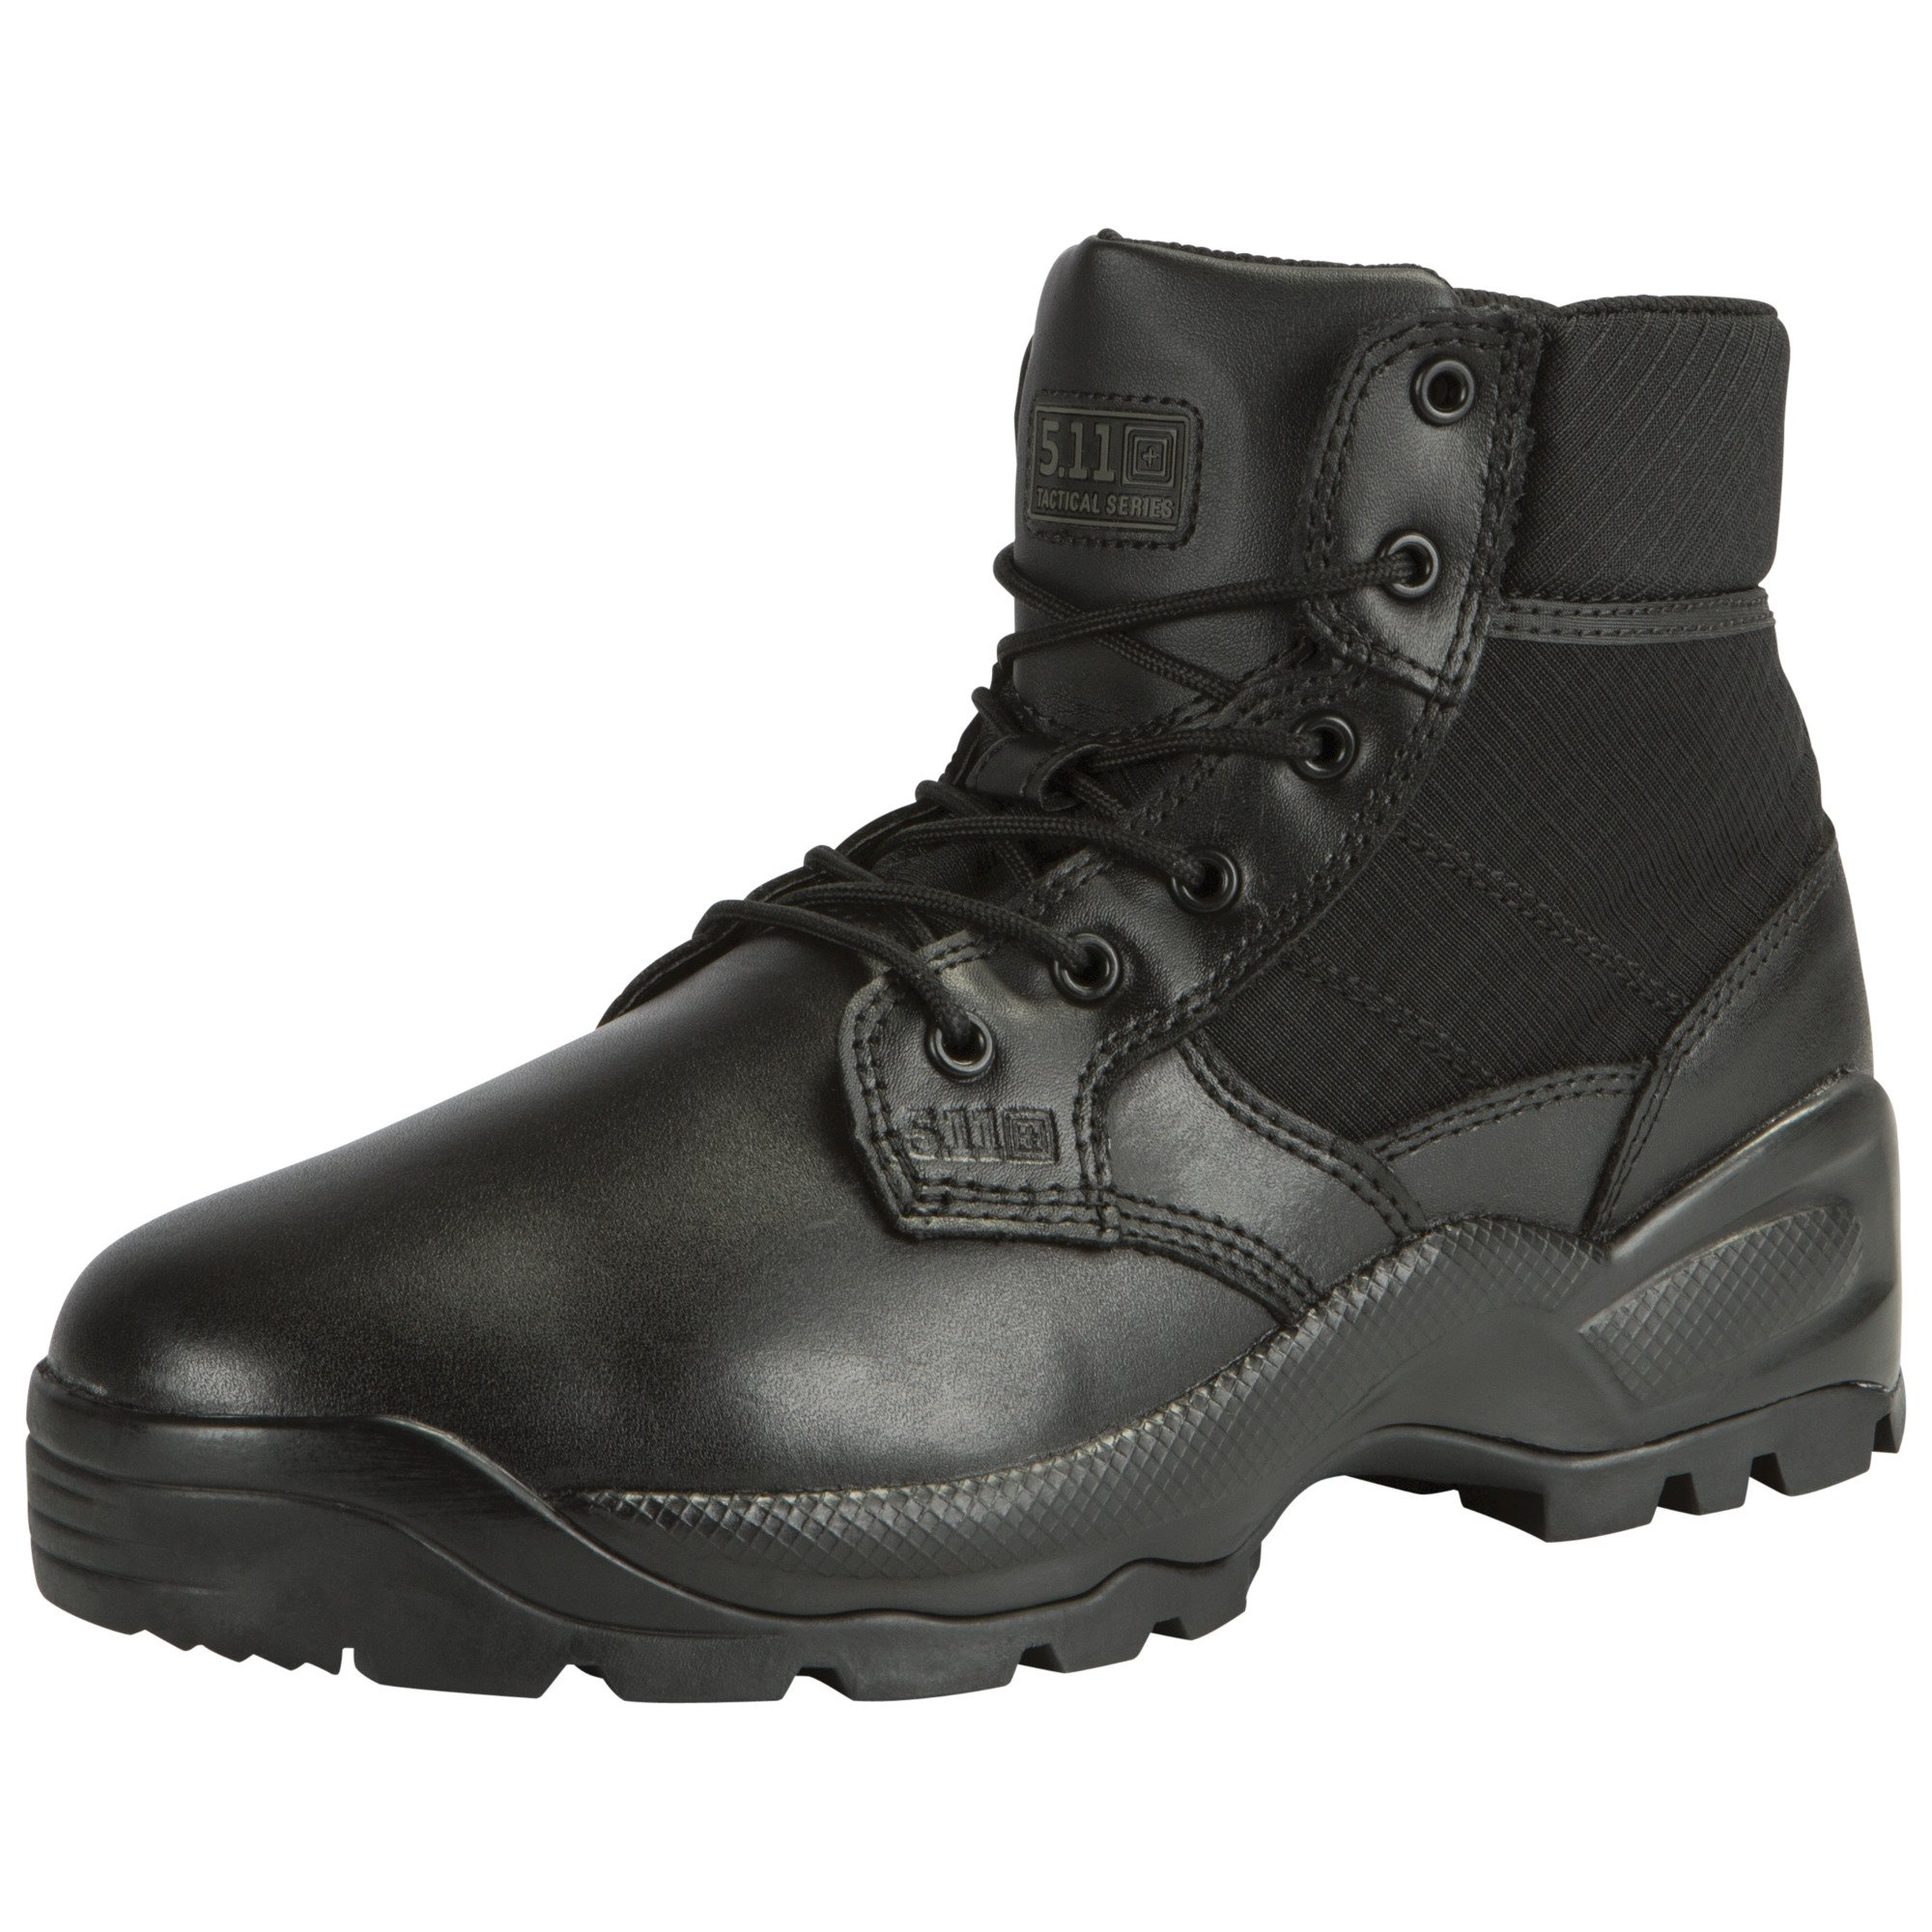 5.11 Tactical Men's Speed 2.0 8 Inch Side Zip Tactical Boot,Black,7.5 D US